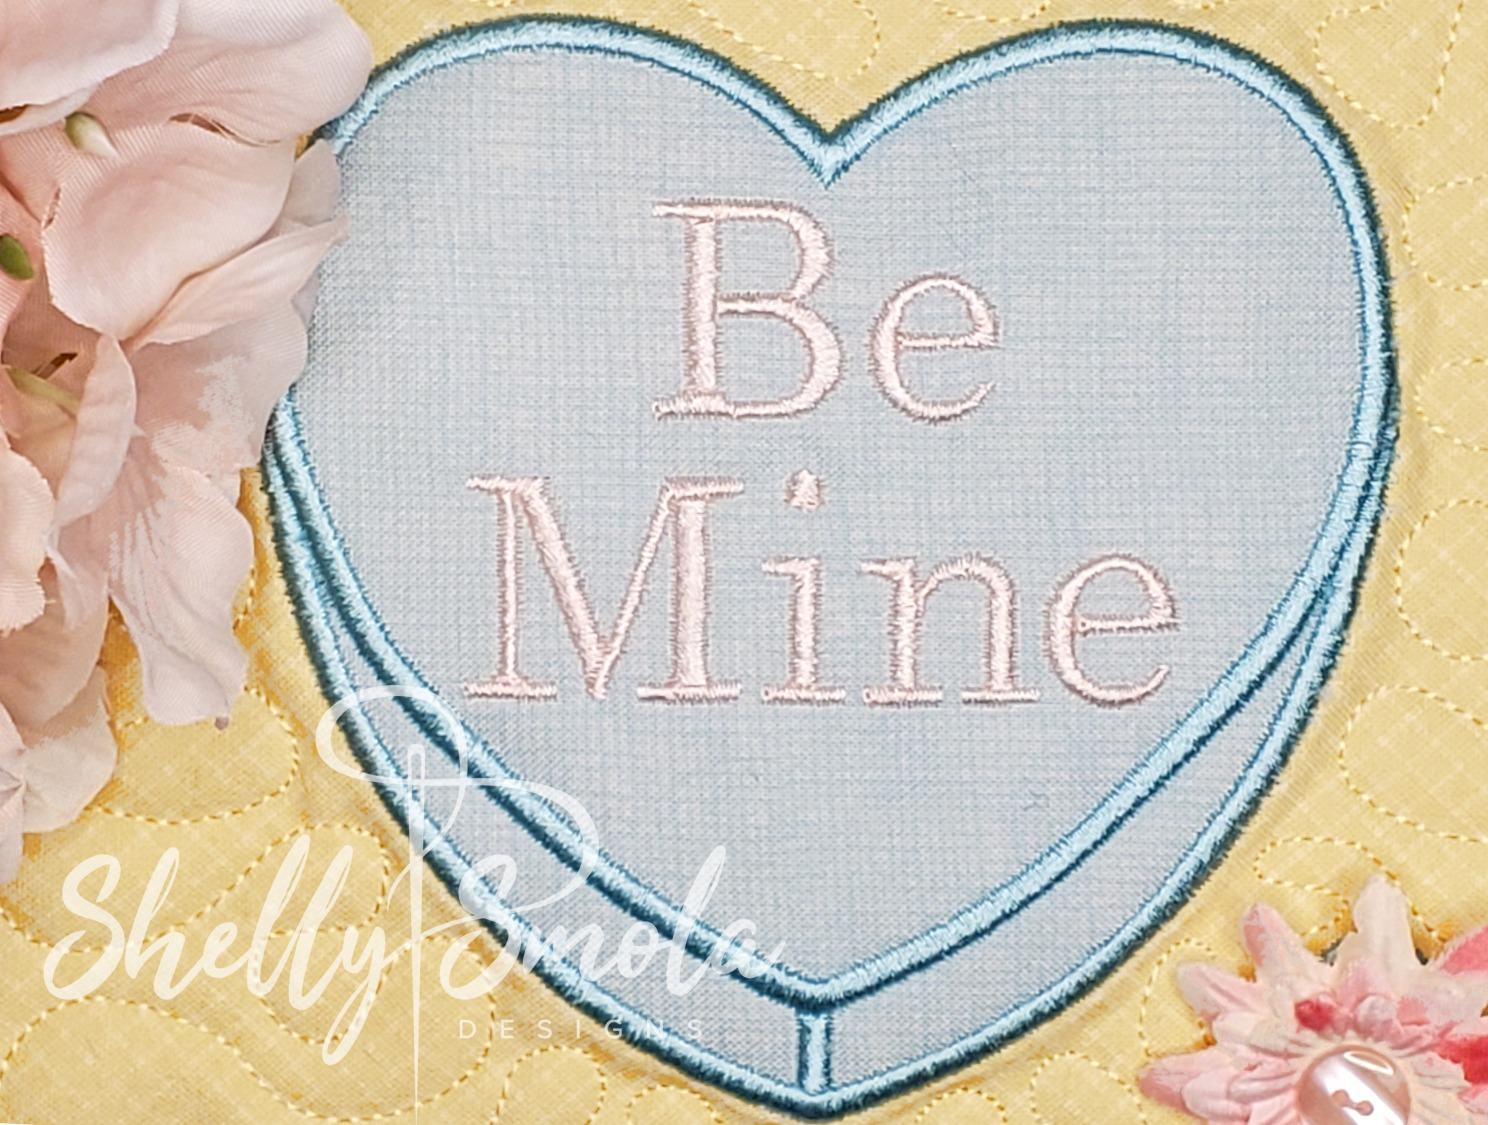 Be Mine Candy Heart by Shelly Smola